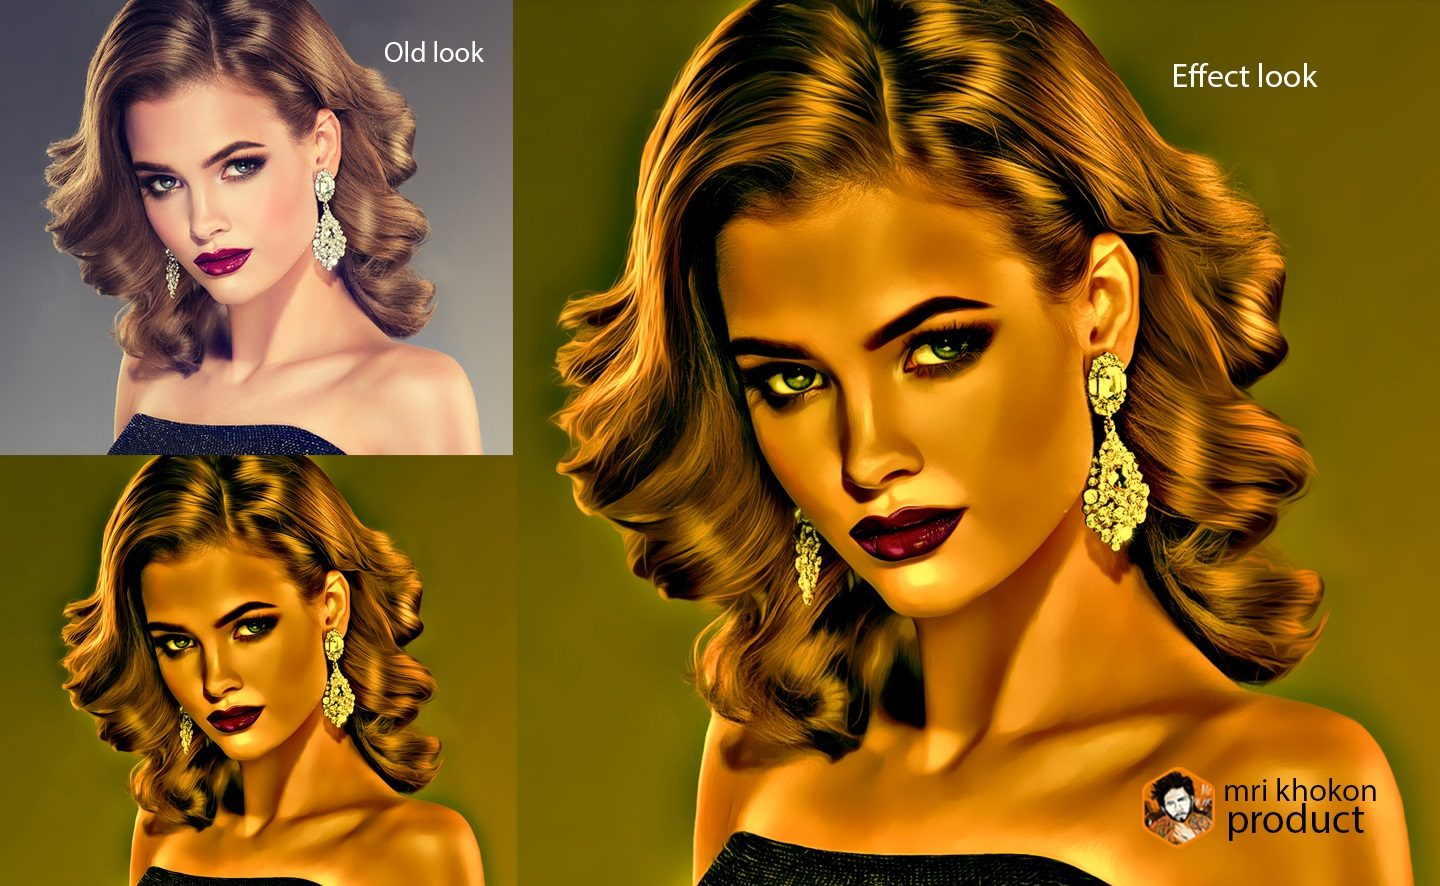 Gold Look Photoshop Effect example image 2